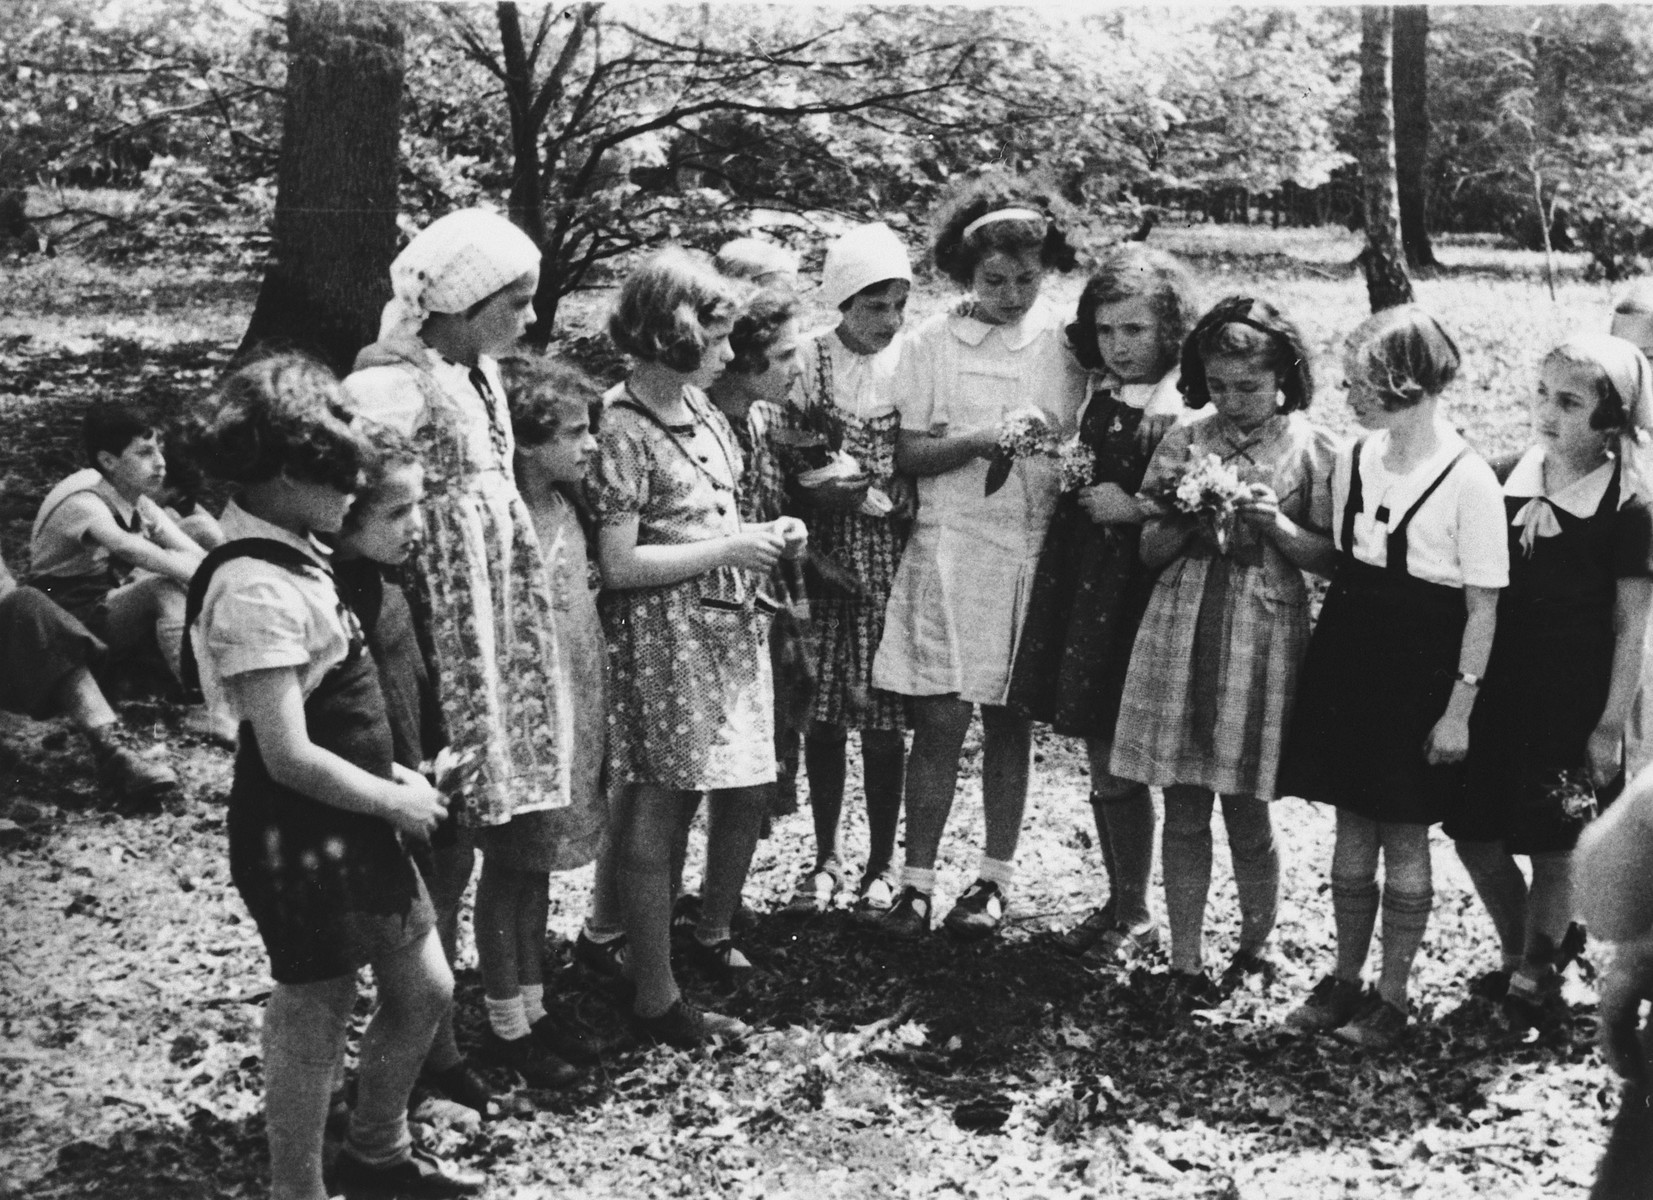 A group of girls stand in a line holding flowers in the Chateau de La Guette children's home.  Among those pictured are Ellen Schwerin (second from right), Helli Buchholz (third from right), Rita Buchholz (fourth from right) and Berty Heiberg (fifth from right).